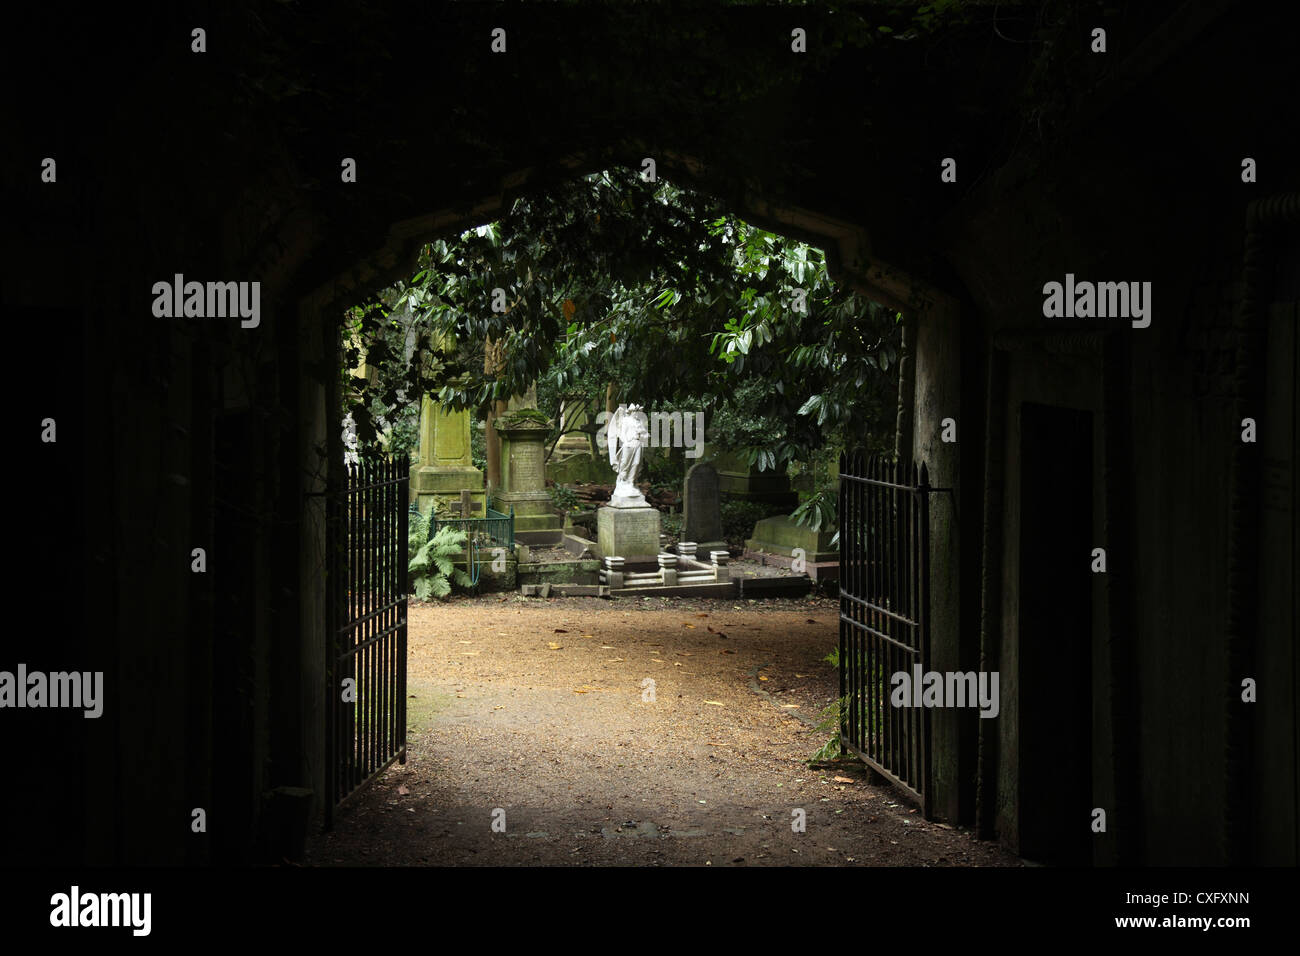 Egyptian Gate at the Highgate Cemetery West in London England - Stock Image